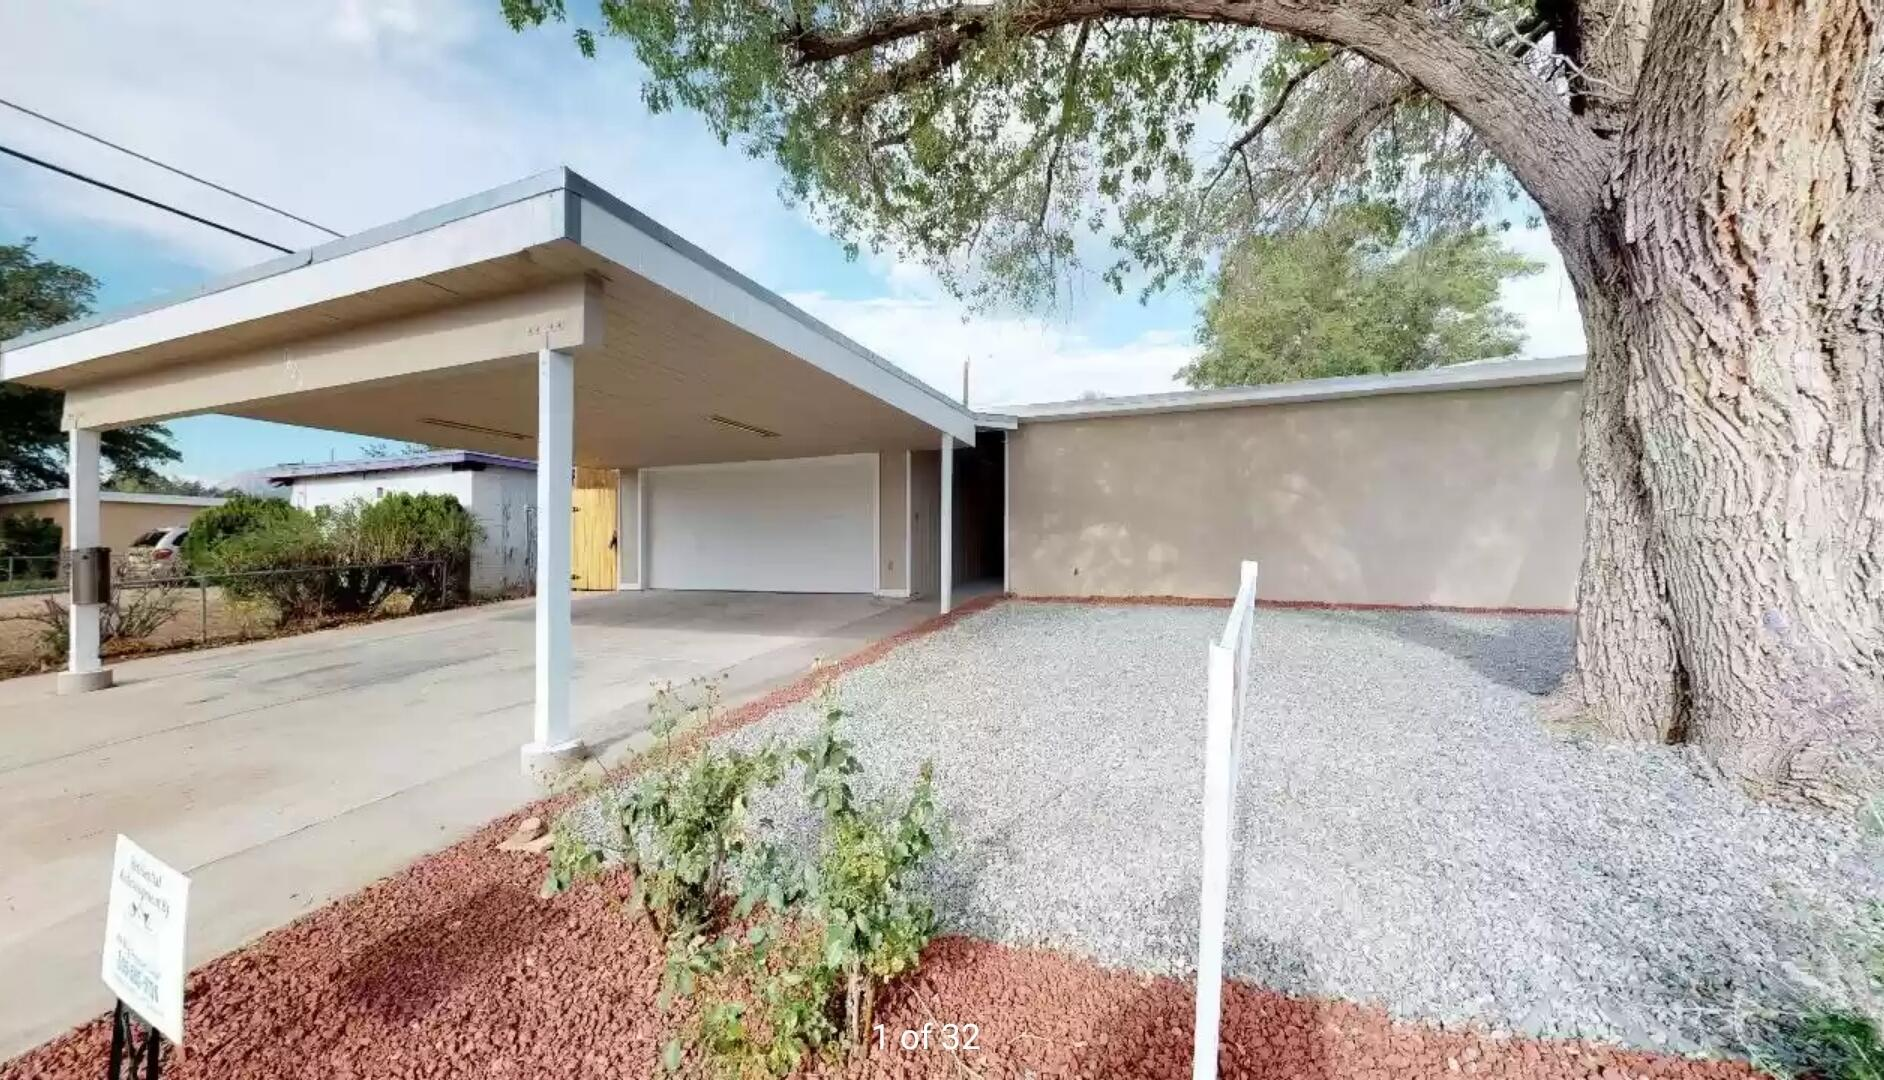 This large family home is completely remodeled from floor up! Located in a convenient central NE heights locations that is perfect for a large family. The home is wheelchair accessible throughout. New paint, roof, hvac, fixtures, flooring and appliances.